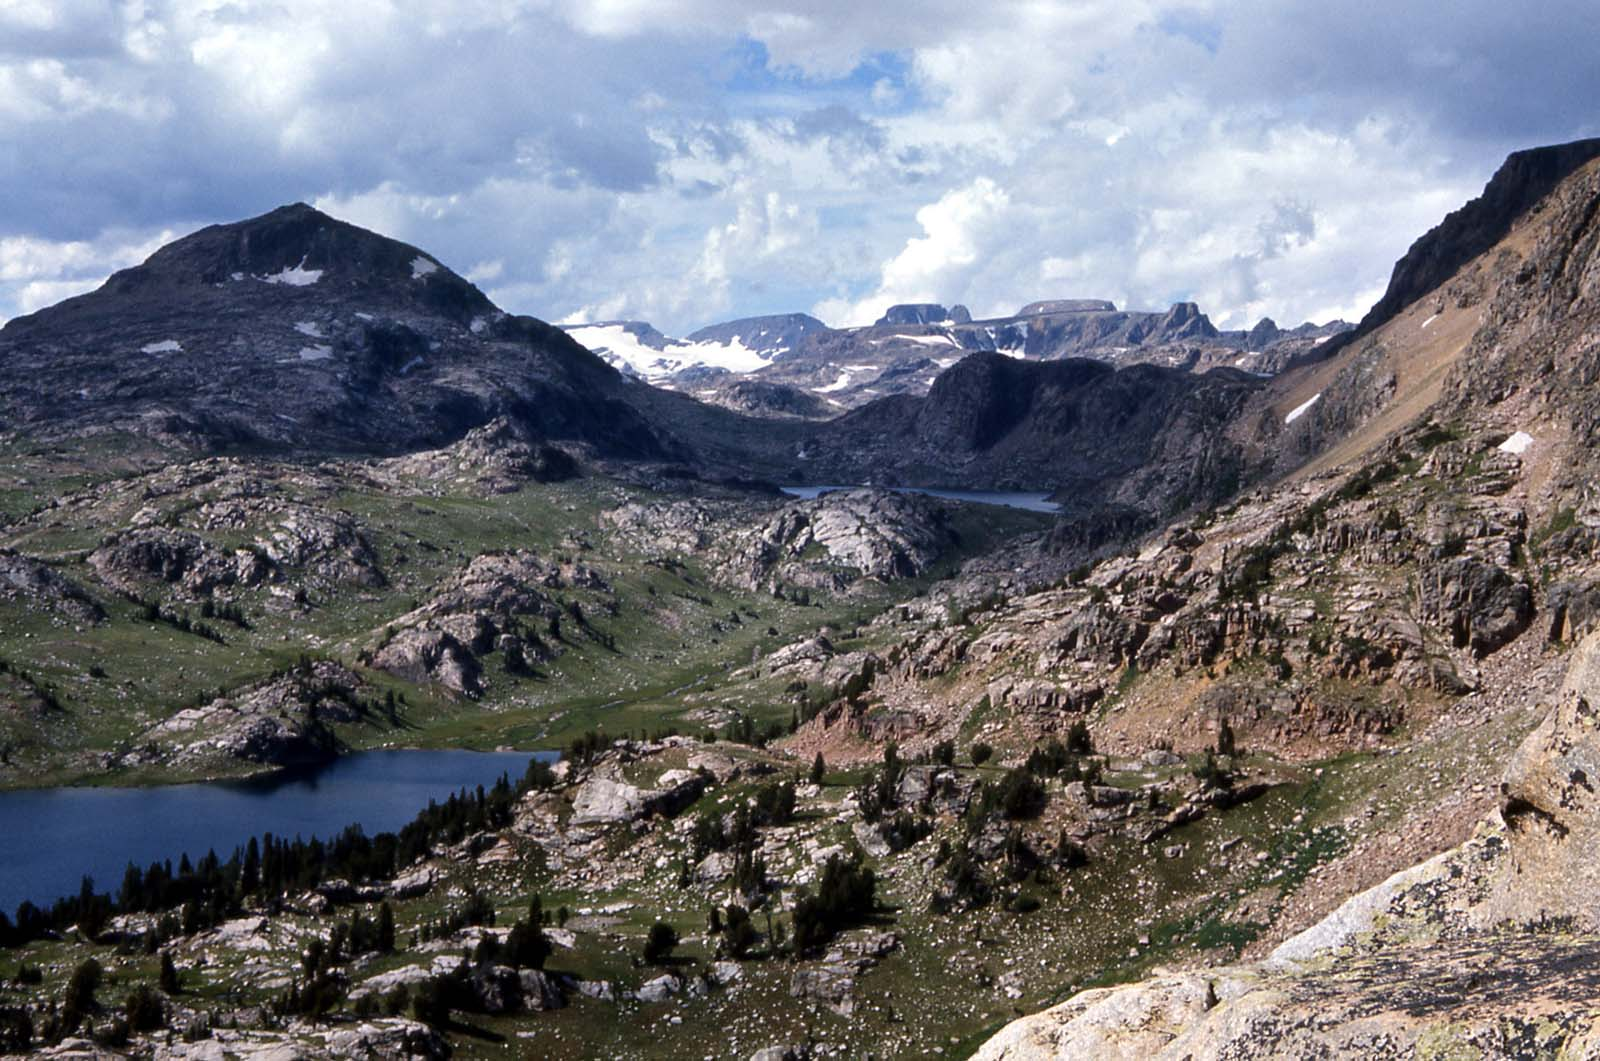 Beartooth country. Photo by J Good, 1966. From Wikimedia Commons.